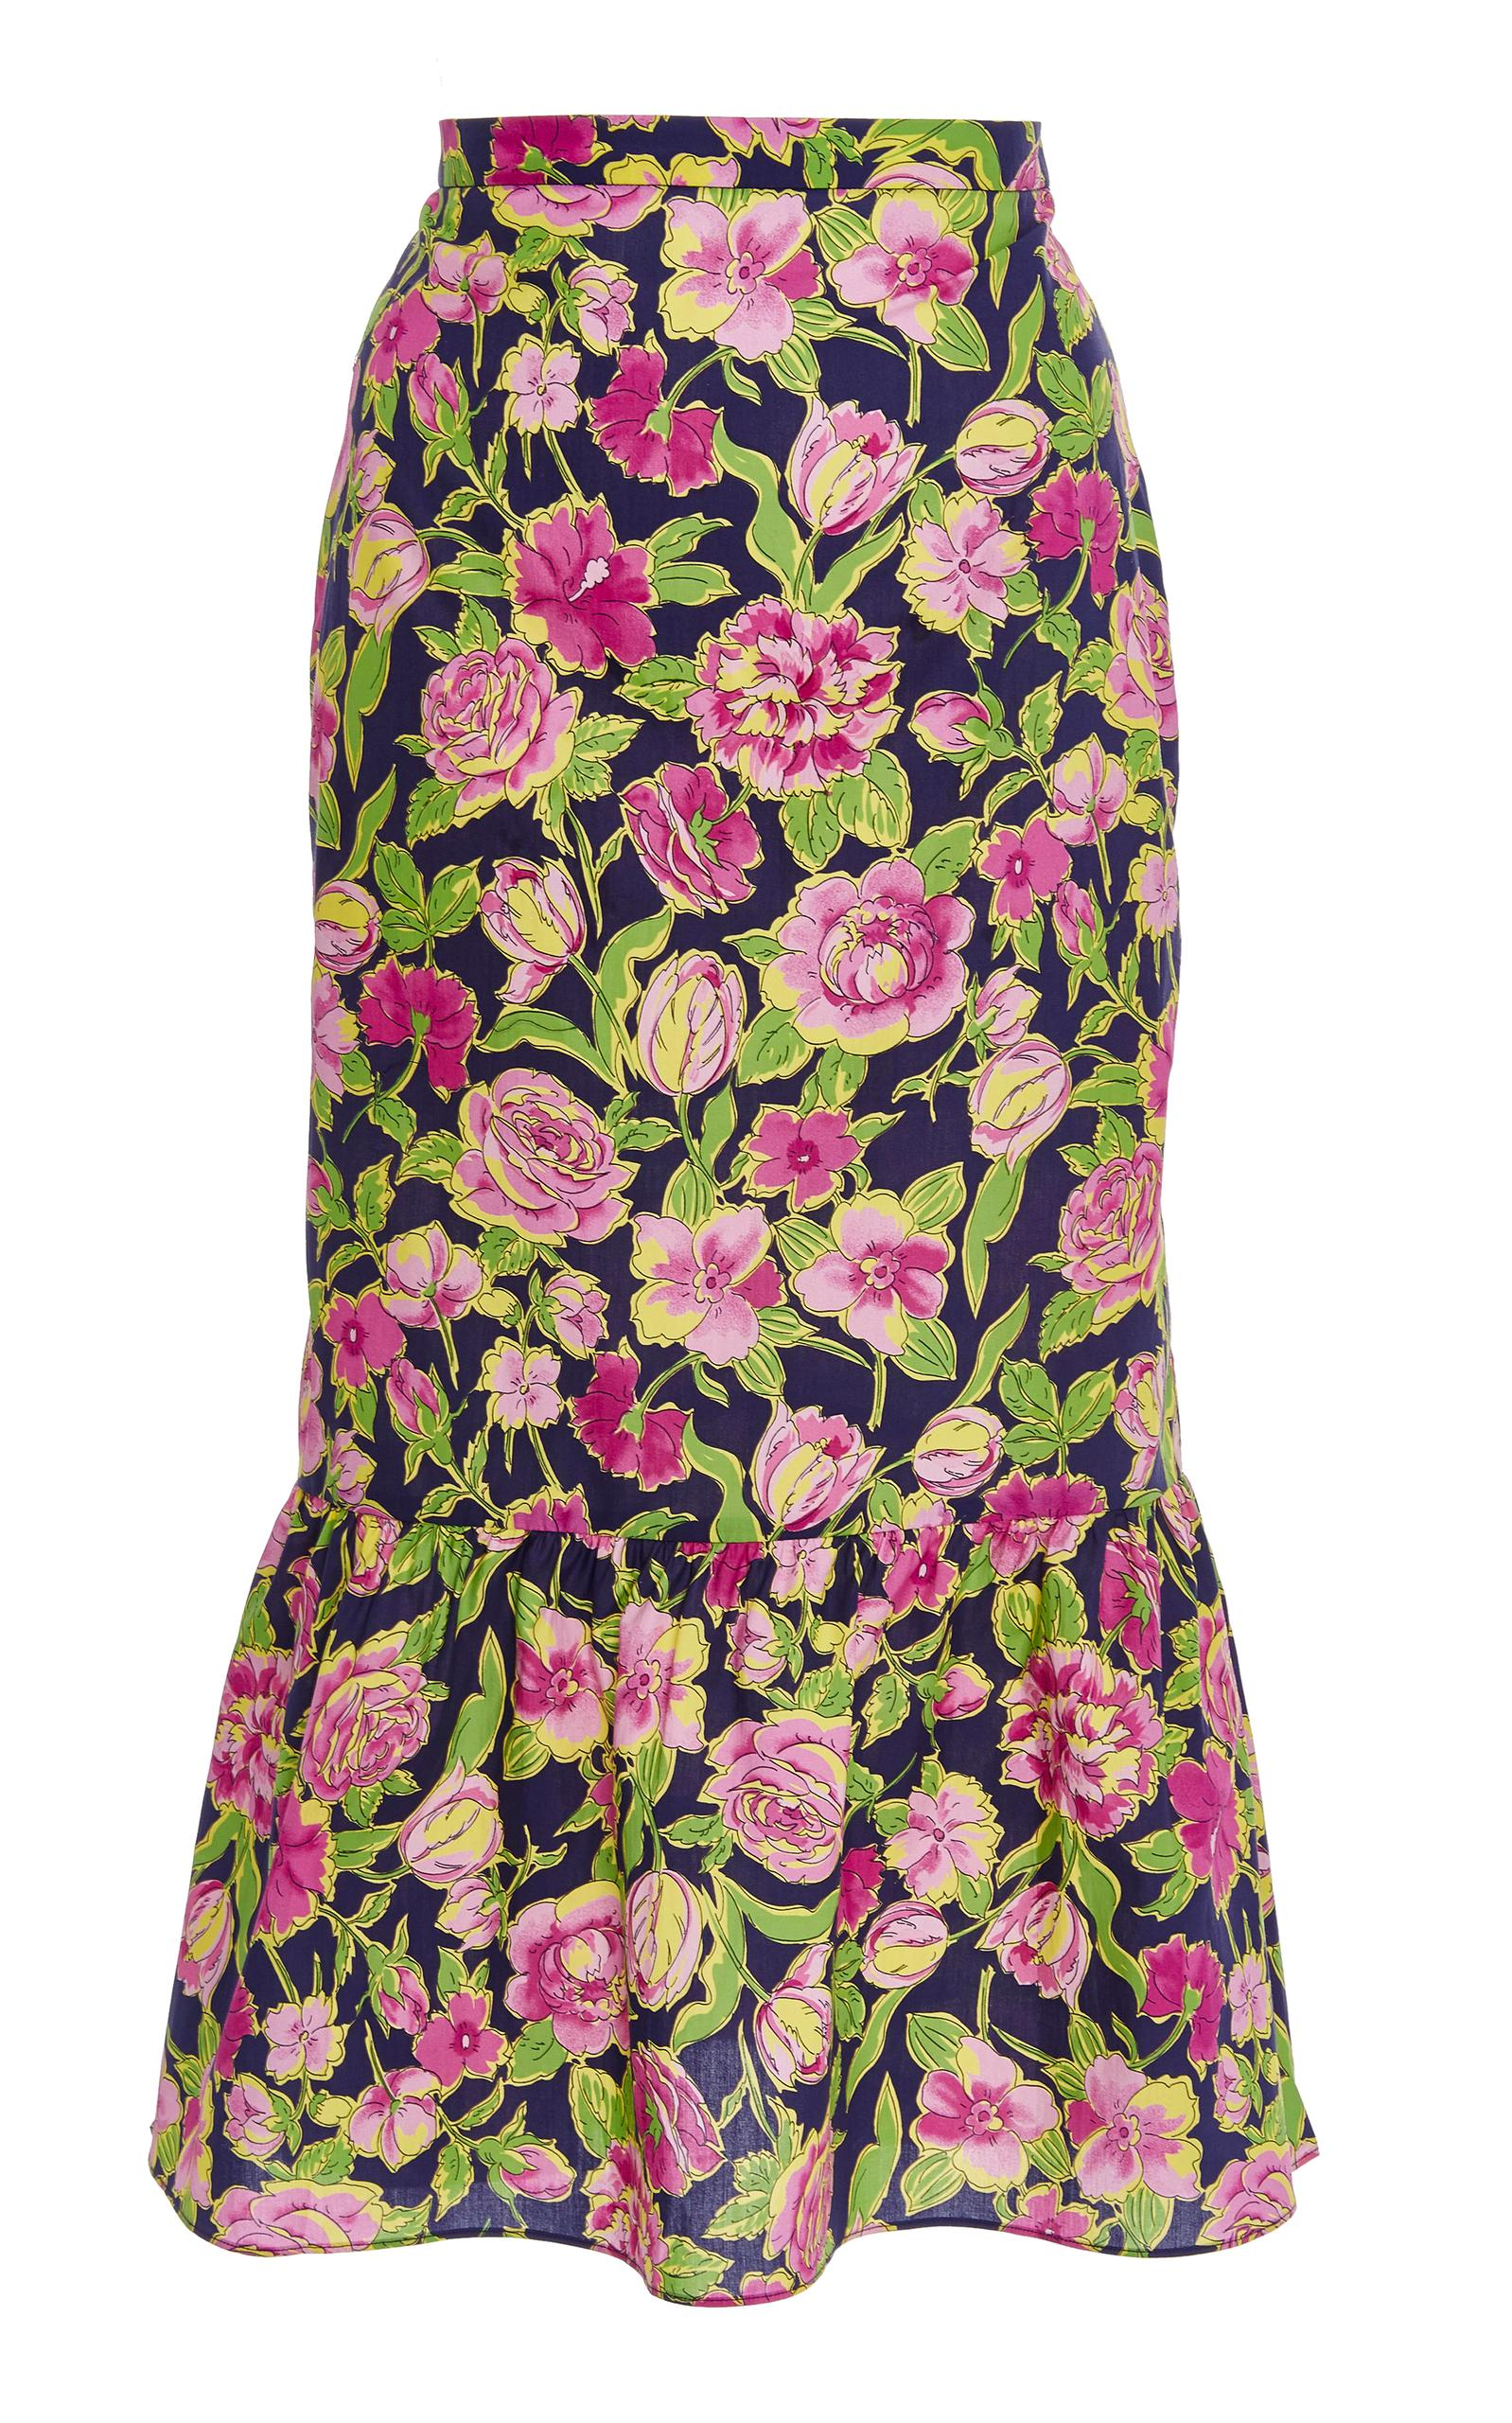 82853ec39 Mds Stripes Pencil Skirt With Ruffle In Navy Floral | ModeSens